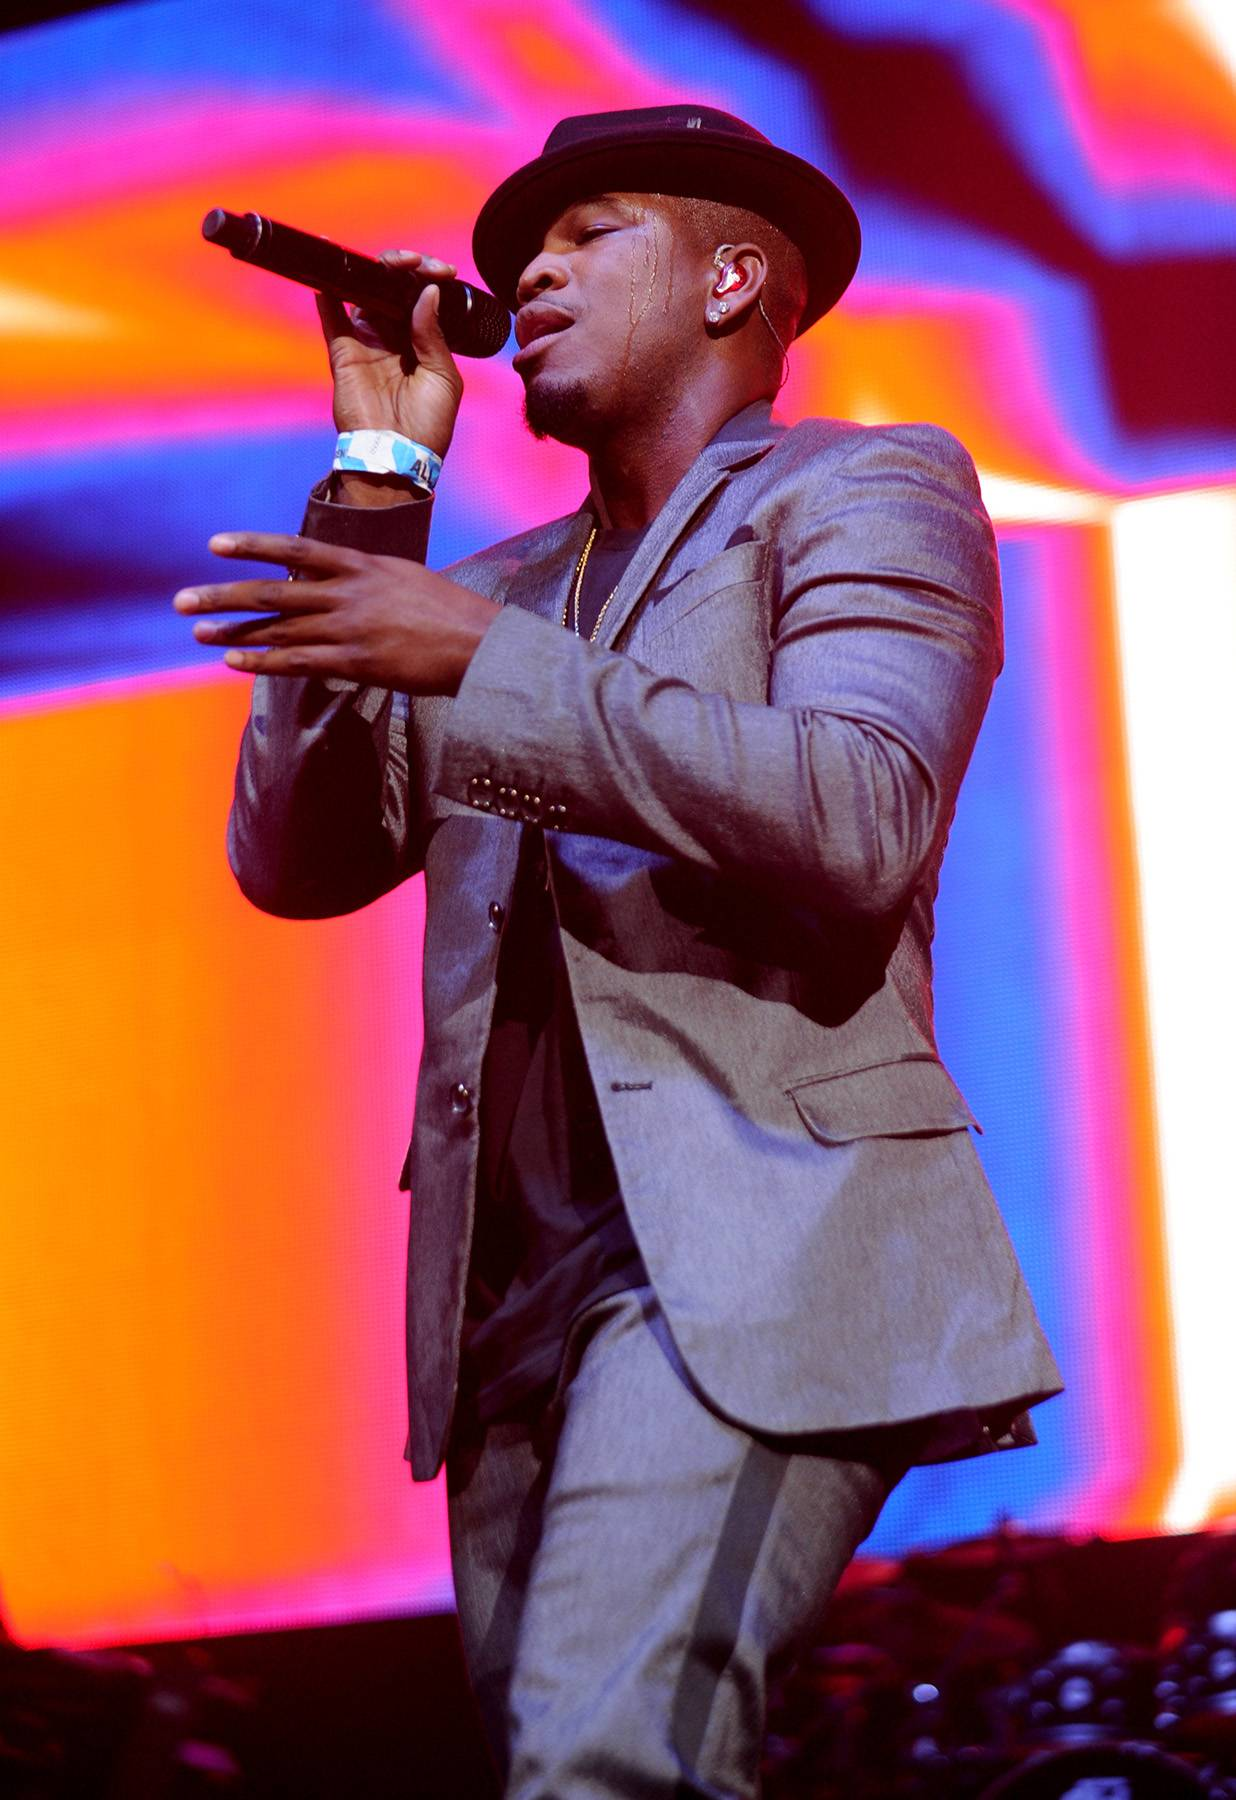 Ne-Yo - R&B crooner Ne-Yo is going to heat up the stage with a very spirited performance for The BET Honors '15 ceremony.(Photo: Bryan Bedder/Getty Images for Power 105.1)